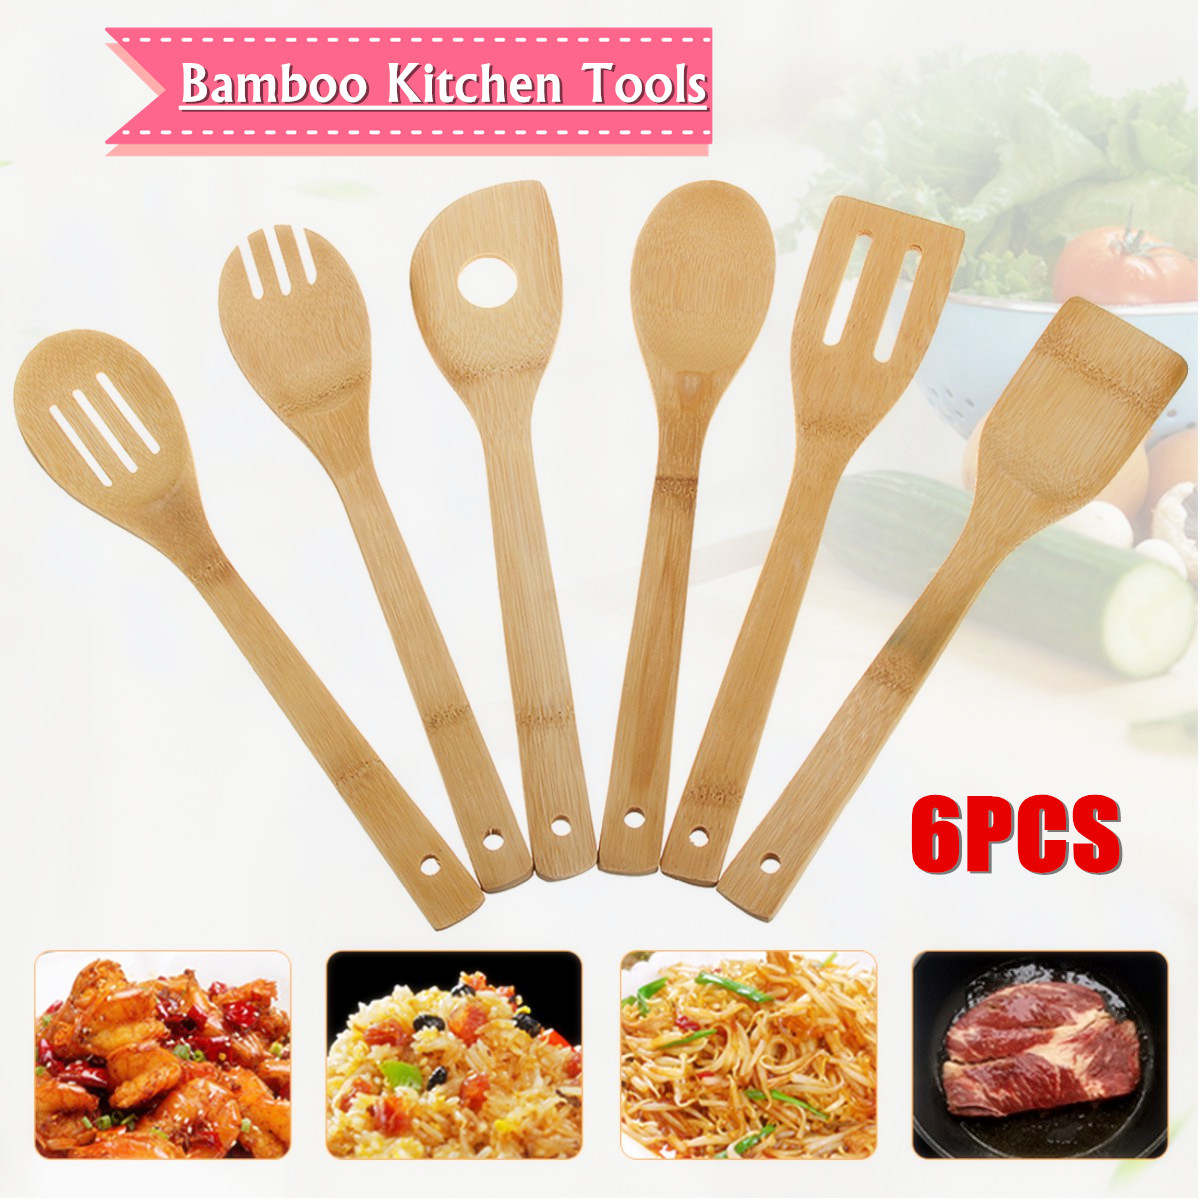 6Pcs Bamboo Kitchen Utensil Tools Slotted Spoons Spatula Cooking Mixing Set